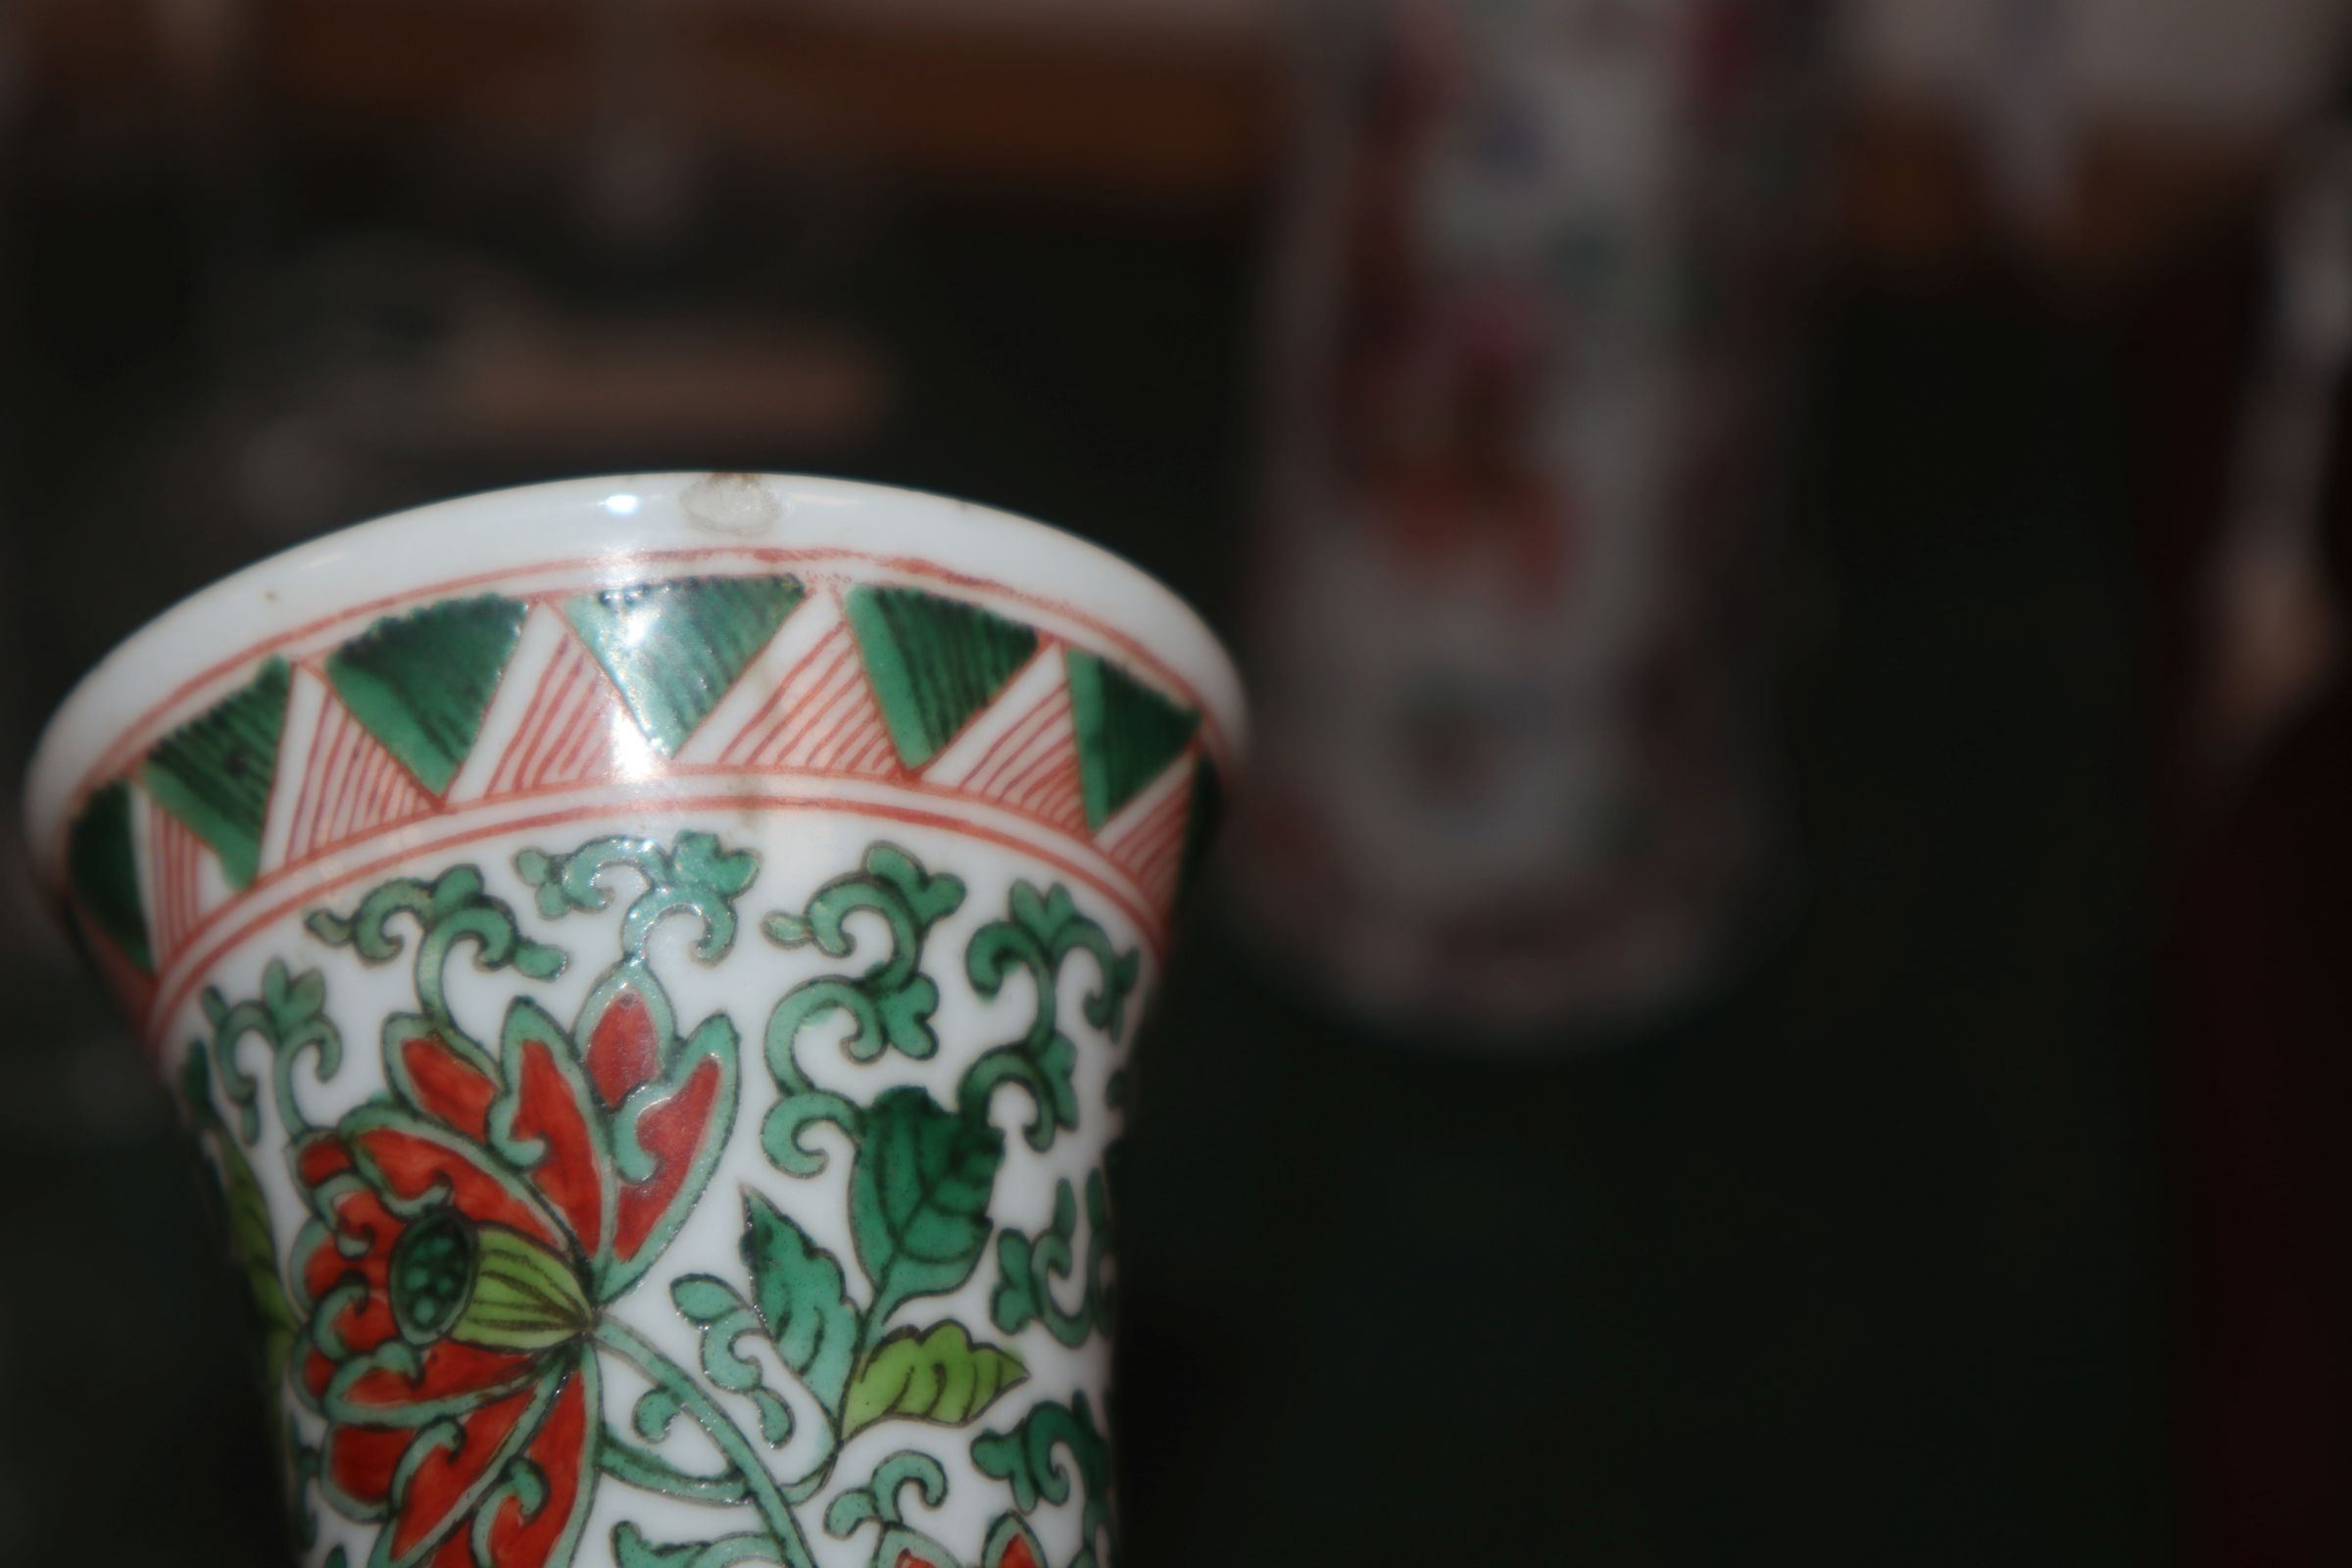 Lot 259 - A Chinese famille verte vase and famille rose vase, 18th/19th century